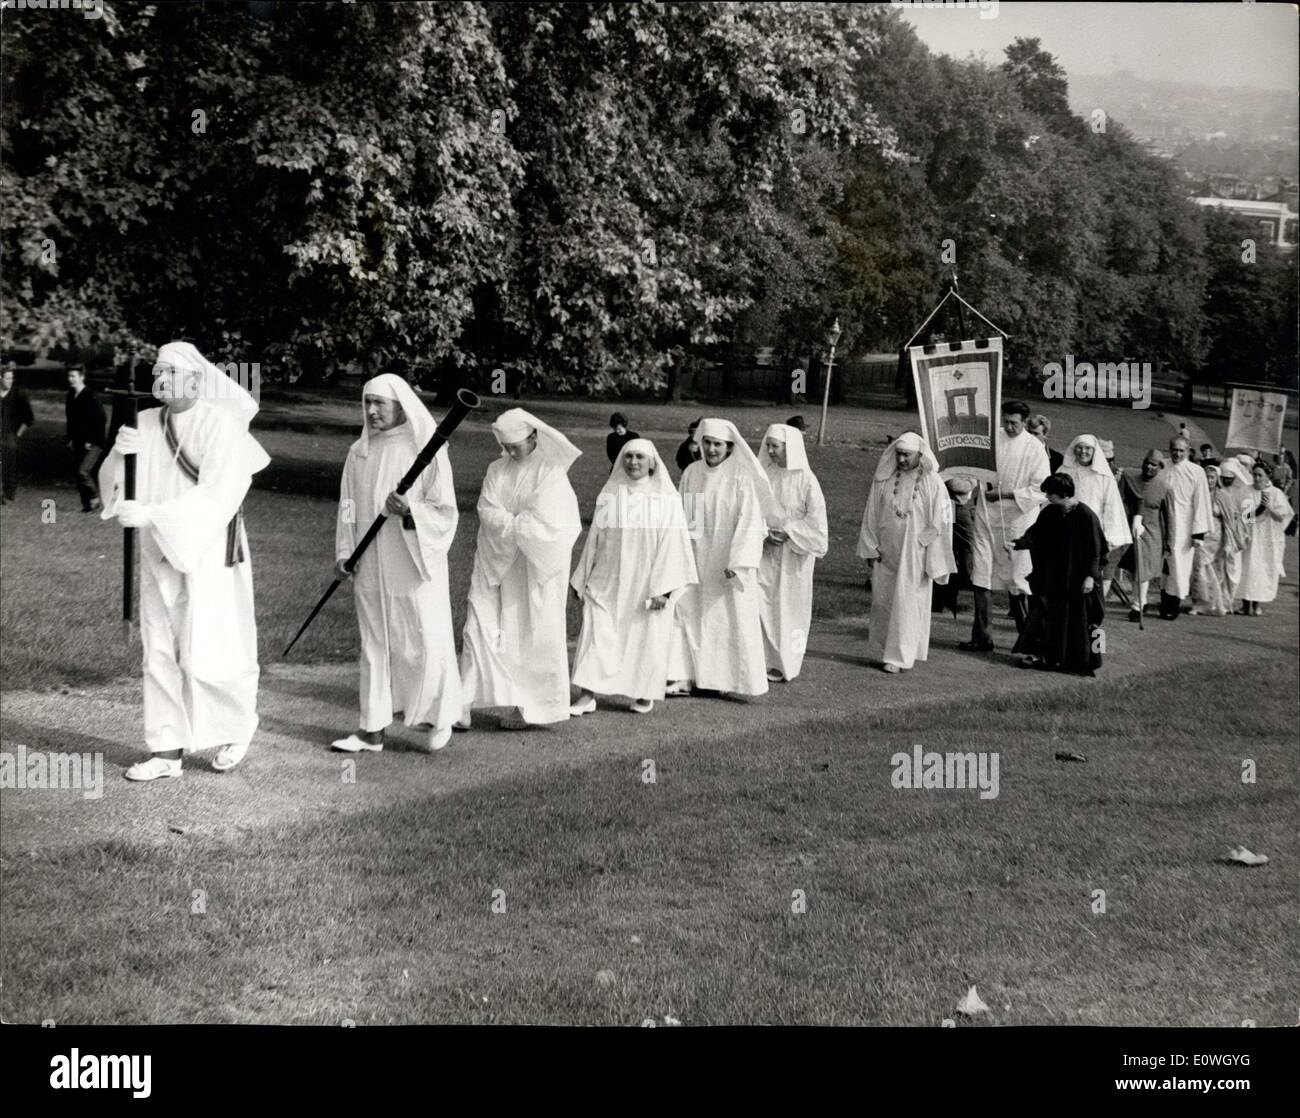 Sep. 23, 1962 - DRUIDS OBSERVE THE AUTUMNAL EQUINOX CEREMONY ON PRIMROSE HILL: The annual assembly of members and friends of the Druid Order (A.D.U.B.) was held today on Primrose Hill, Regent's Park, London, to observe the Autumnal Equinox. Photo Shows. The procession of Druids and friends move up the hill for the ancient ceremony today. - Stock Image